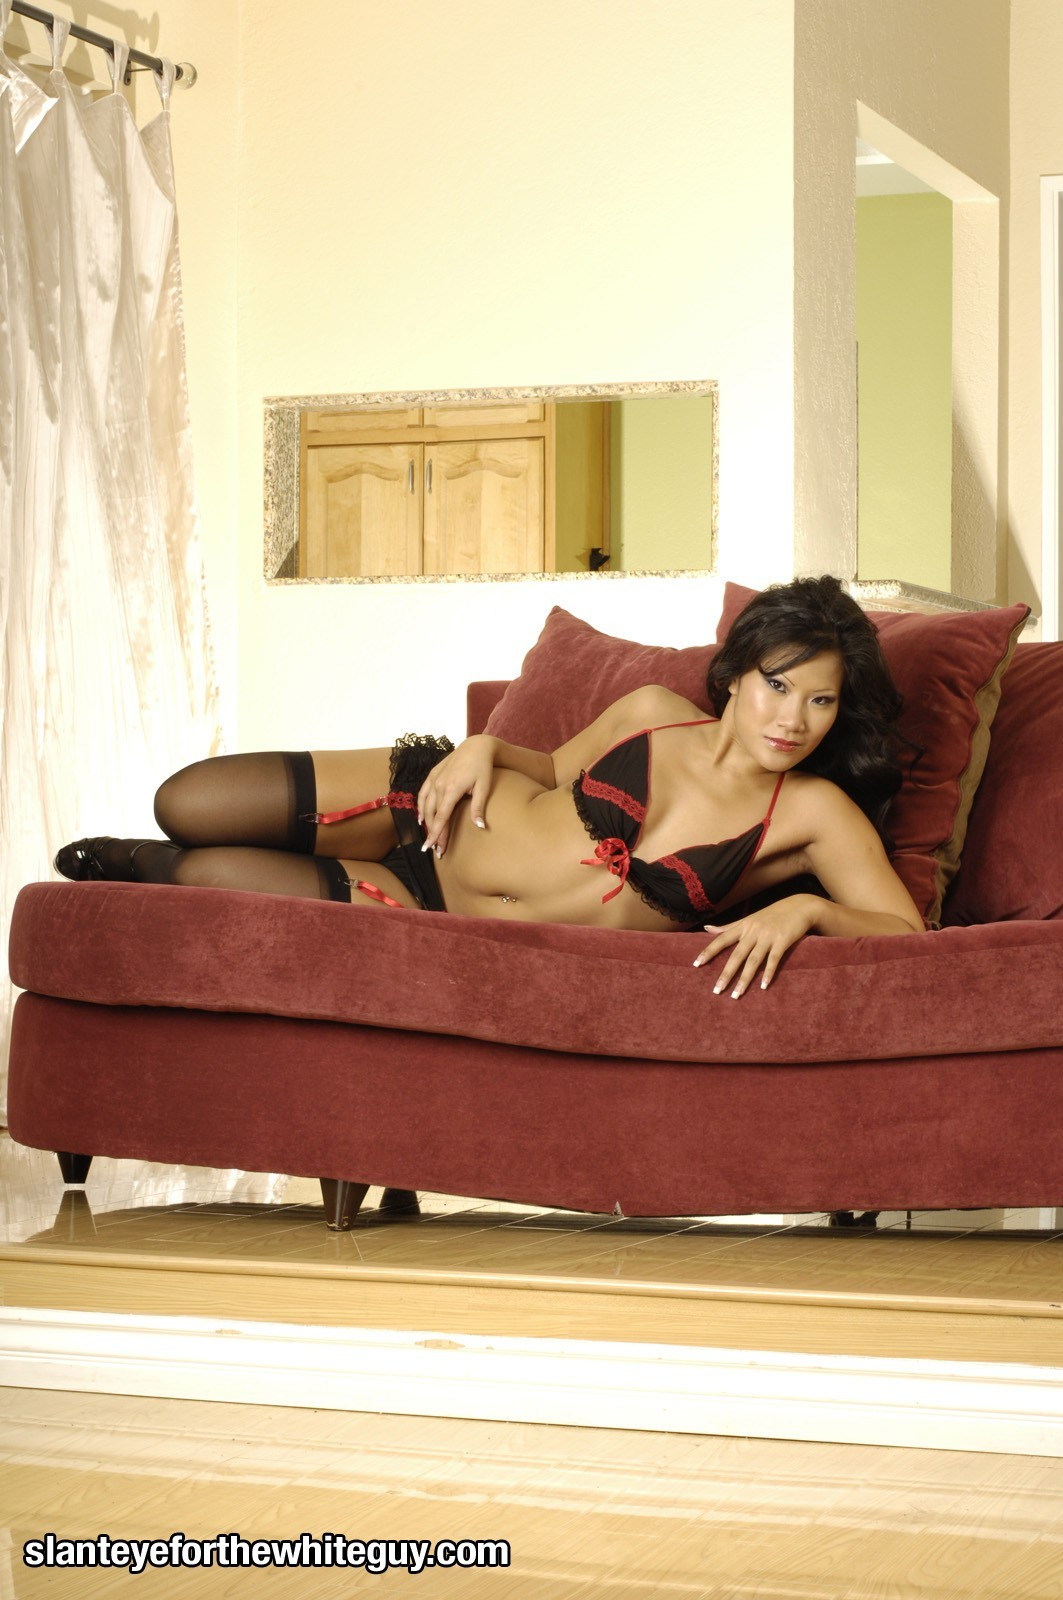 couch pornstars asians Asa HD Wallpaper